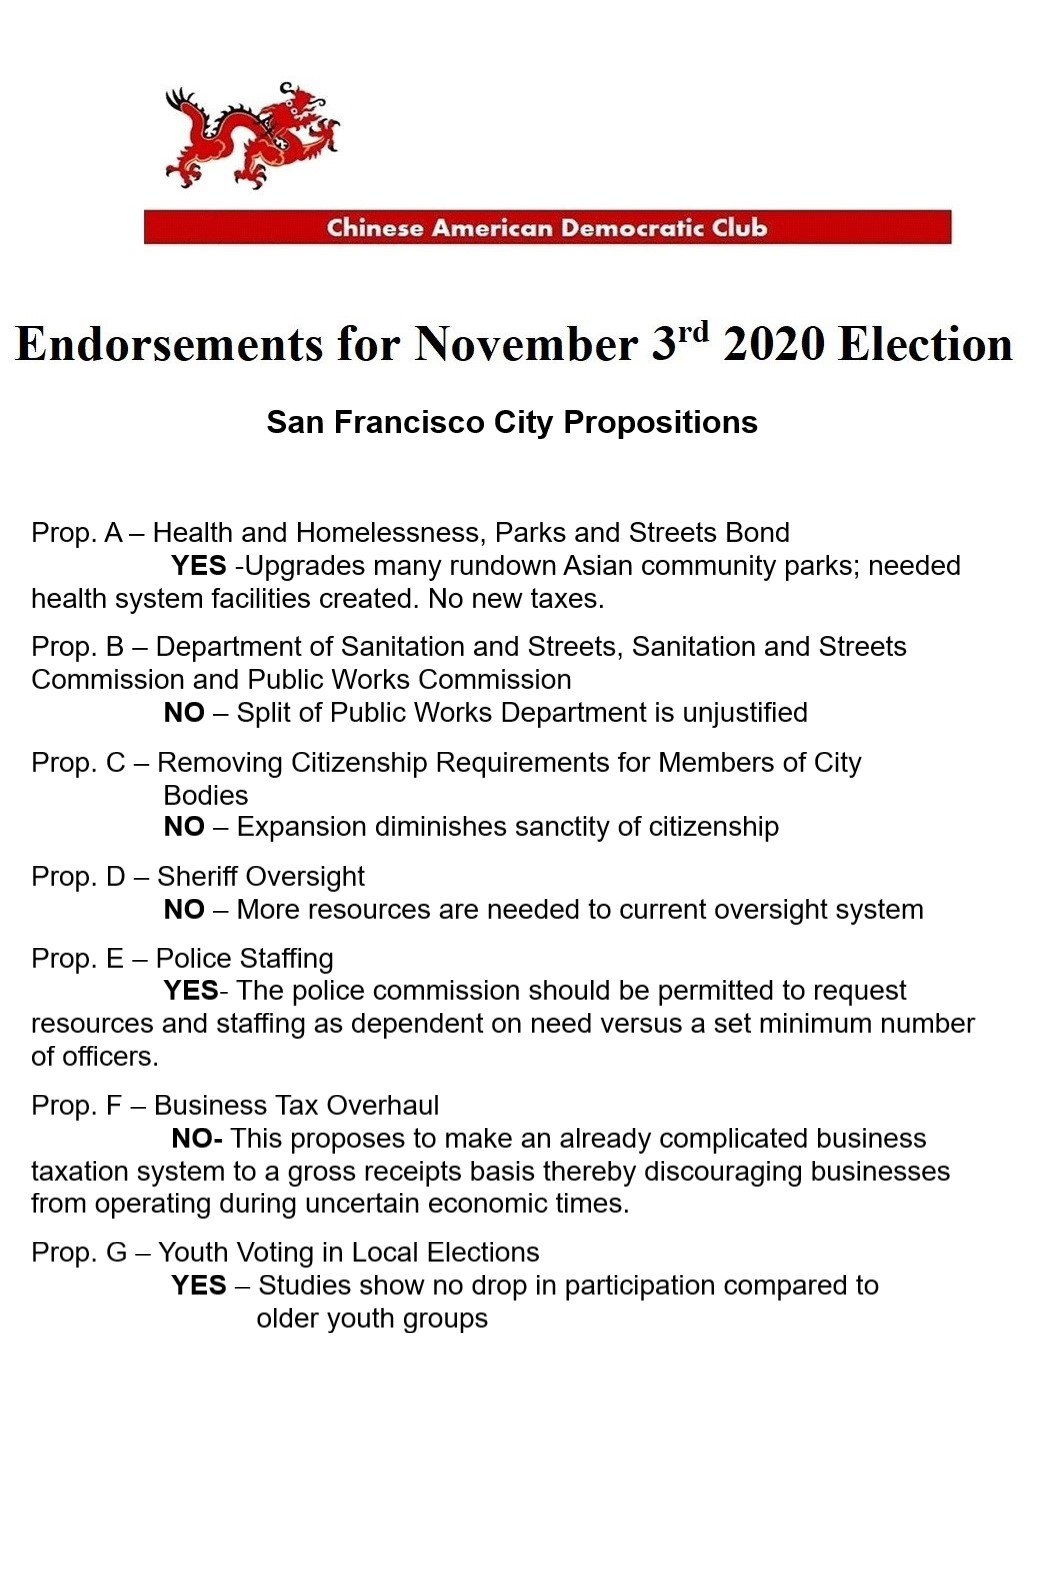 Endorsements_11-2020_Issues3.jpg